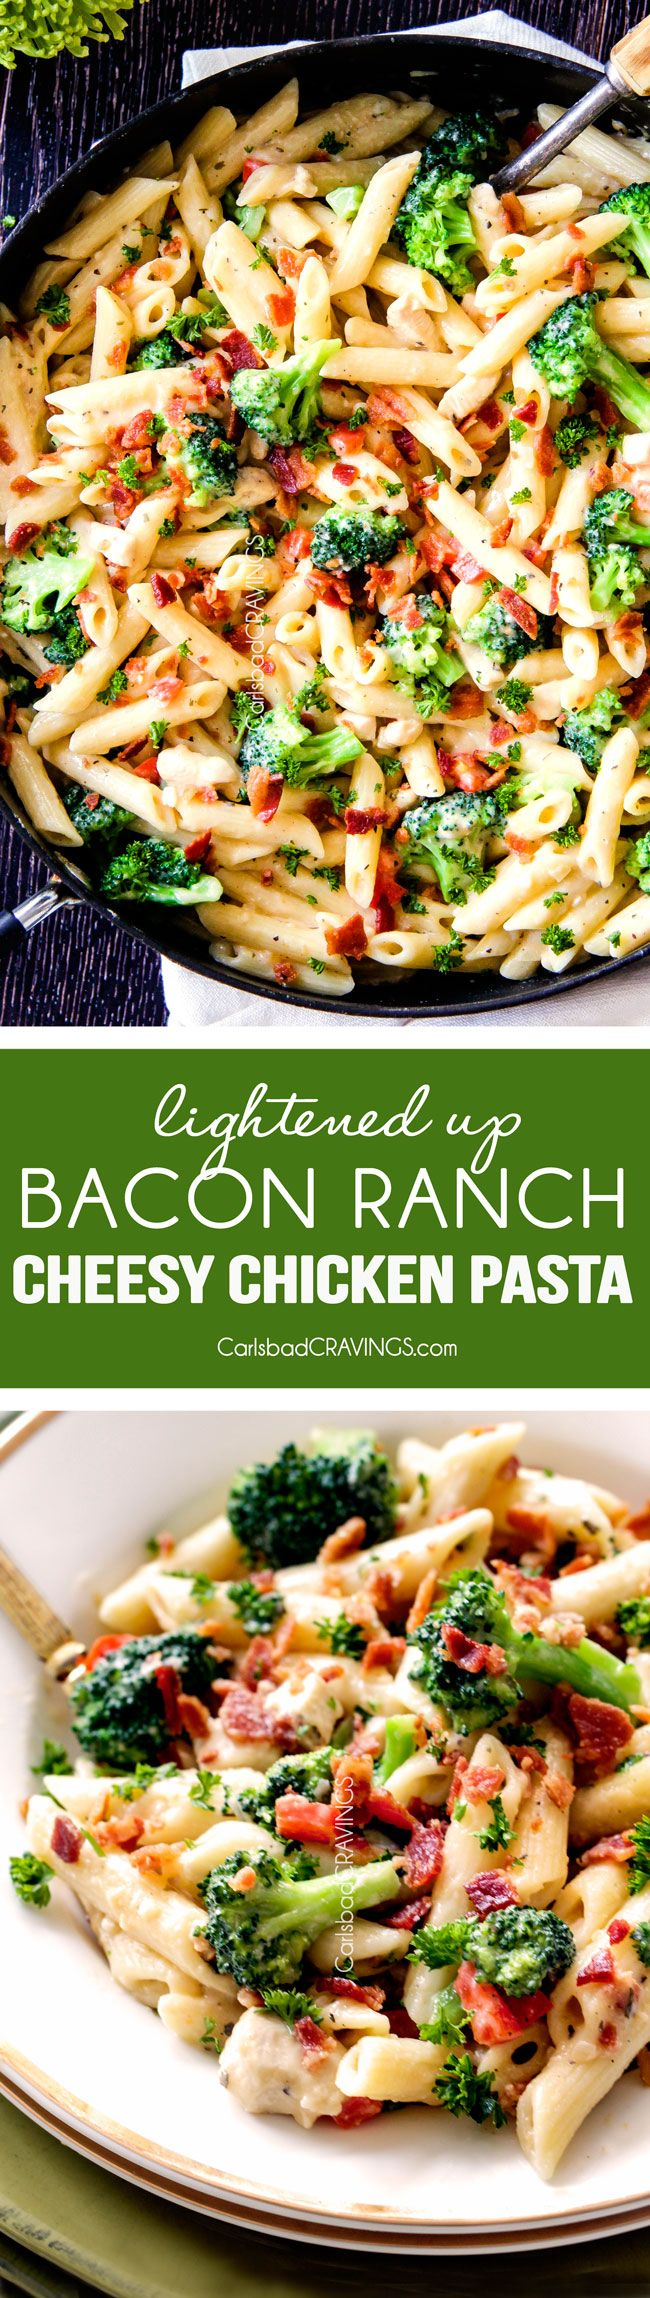 this Cheesy Chicken Bacon Ranch Pasta is my family's favorite!  The lightened up cheesy ranch sauce is incredible and you can add chicken, veggies, whatever you want!